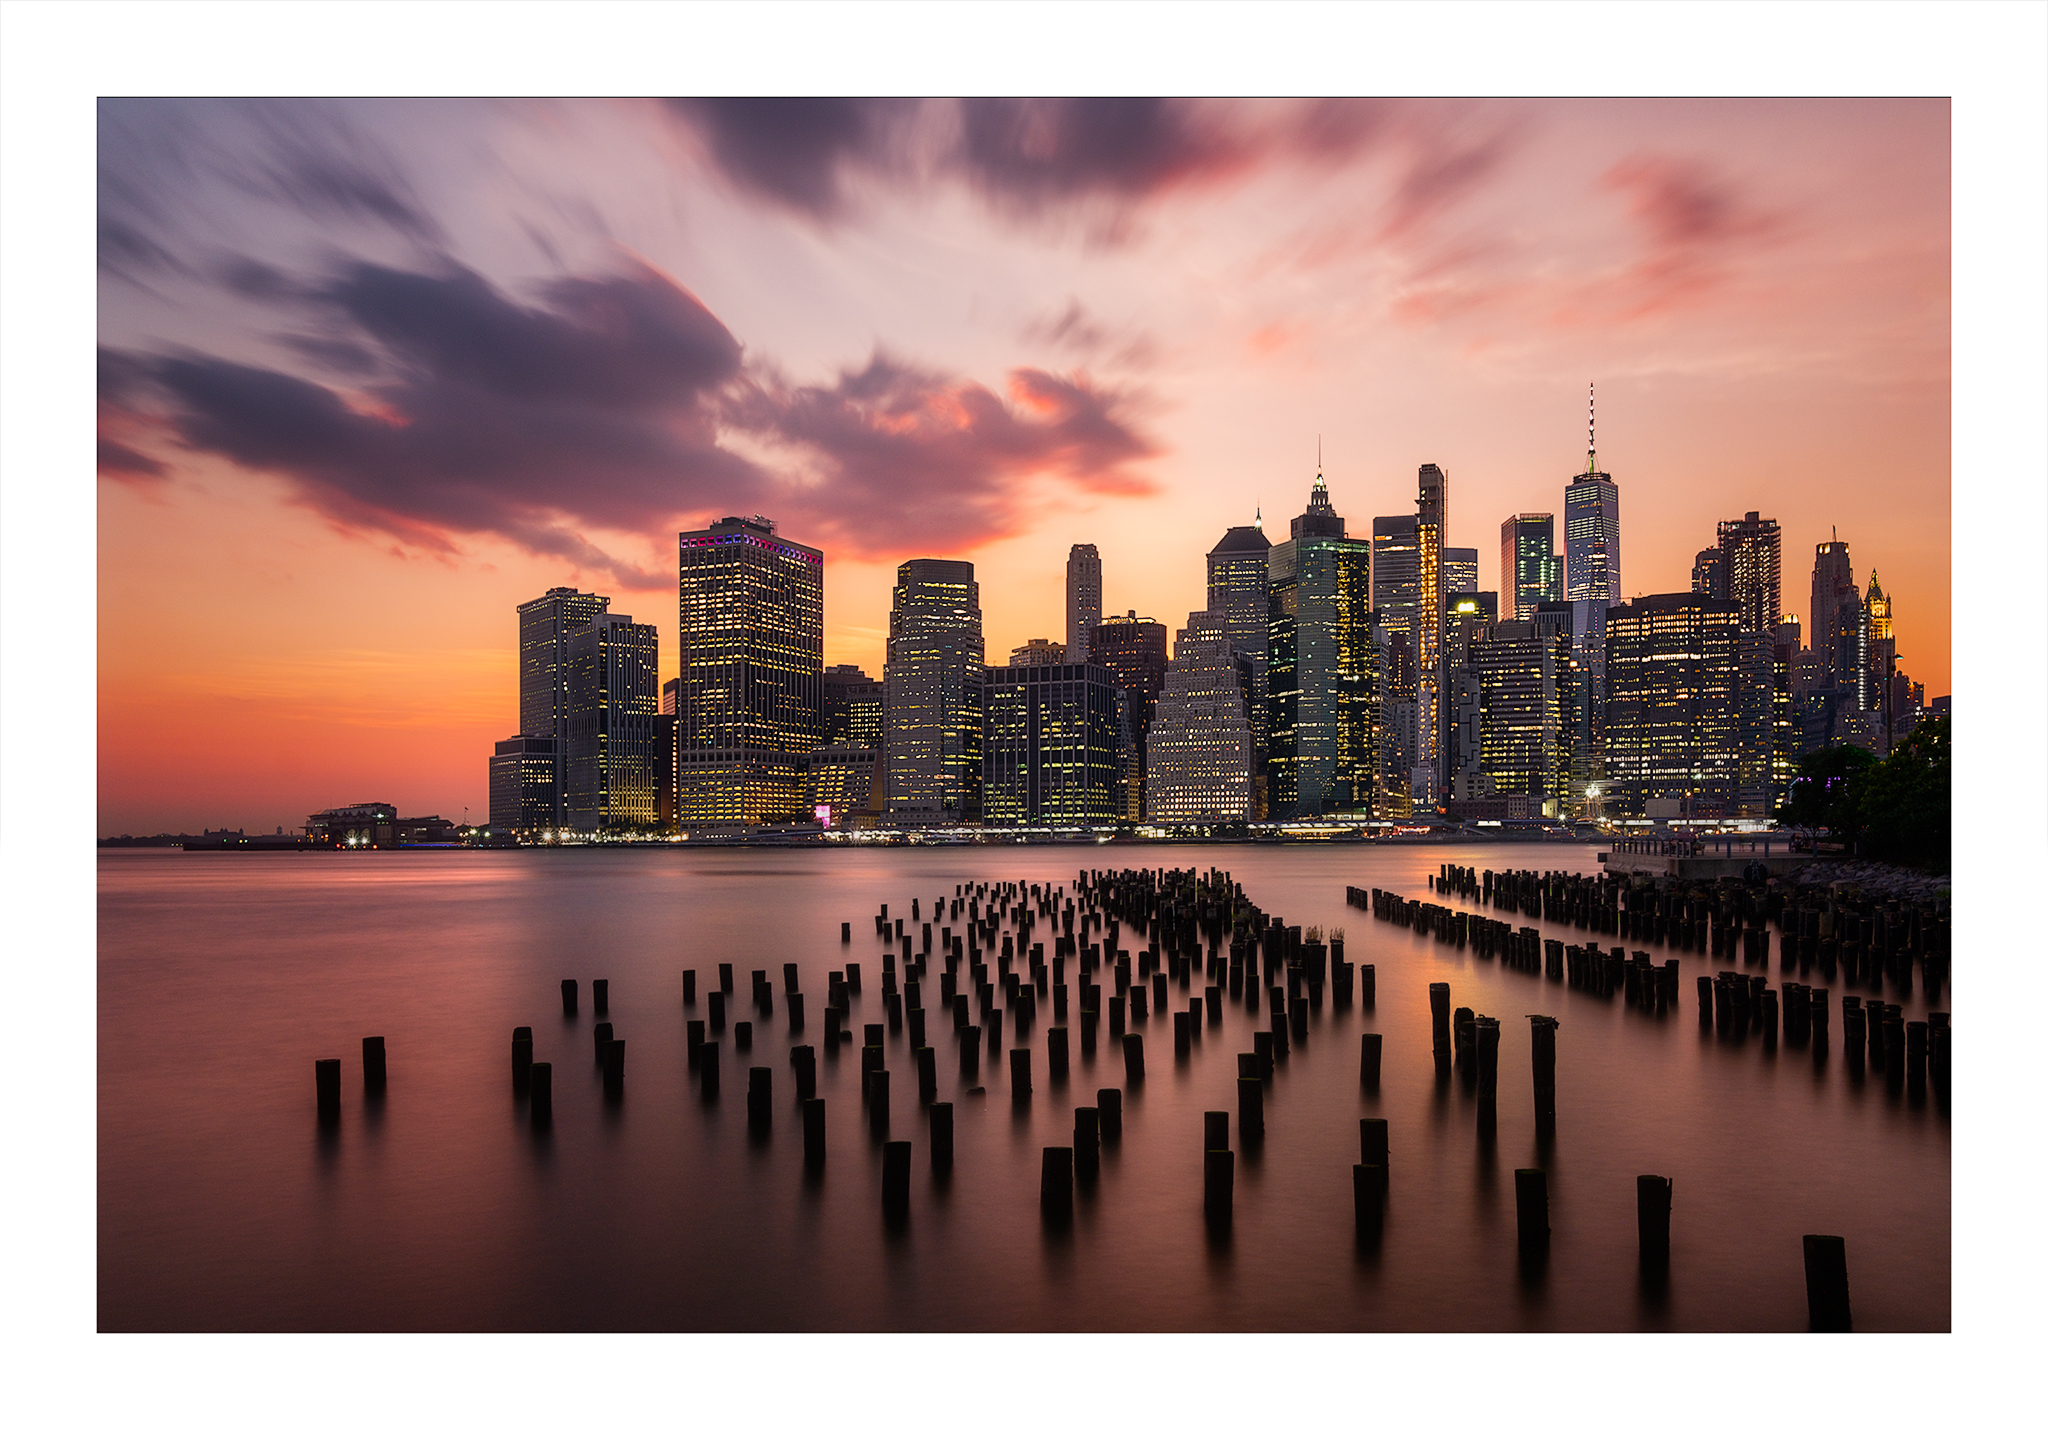 Sunset at Pier1, Brooklyn...